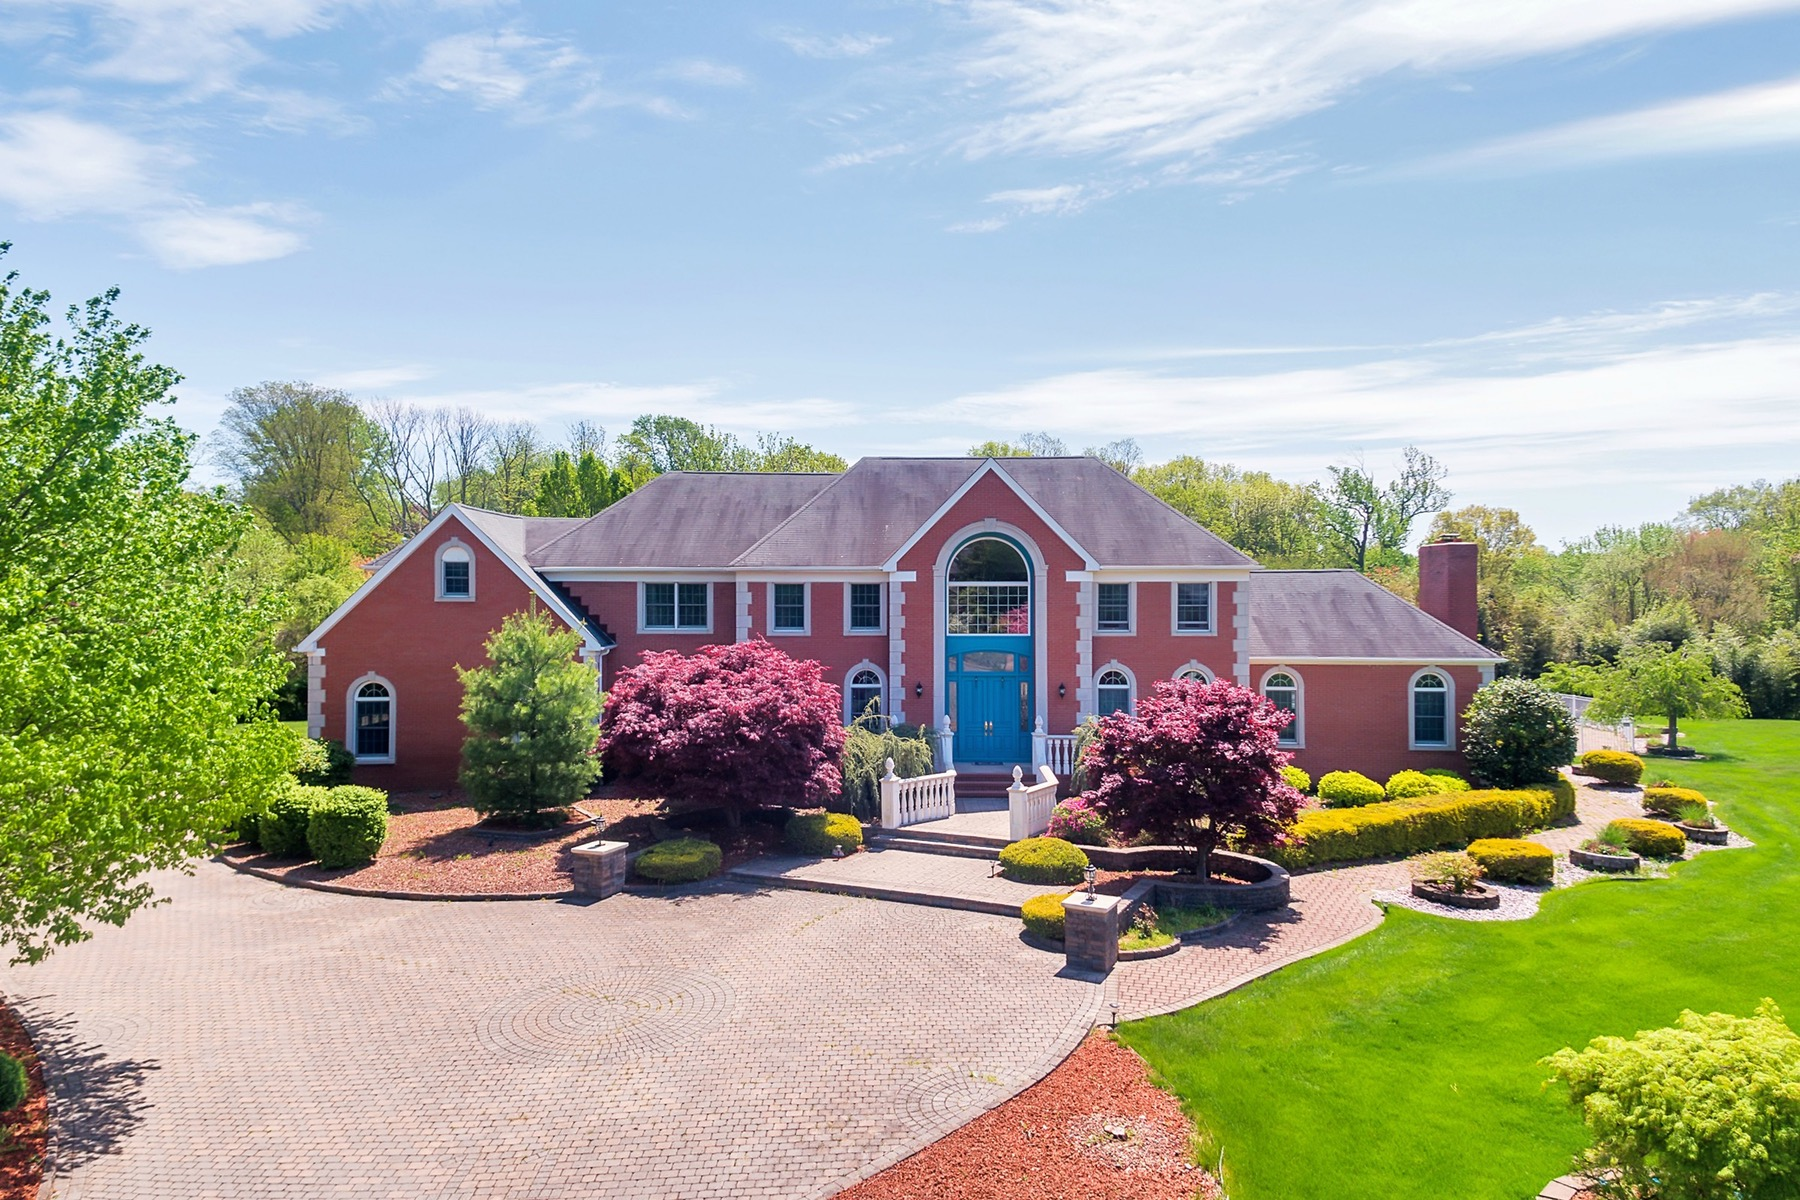 Single Family Home for Sale at Serenity is Yours in Tiberon Estates! 11 Monterey Court Holmdel, 07733 United States